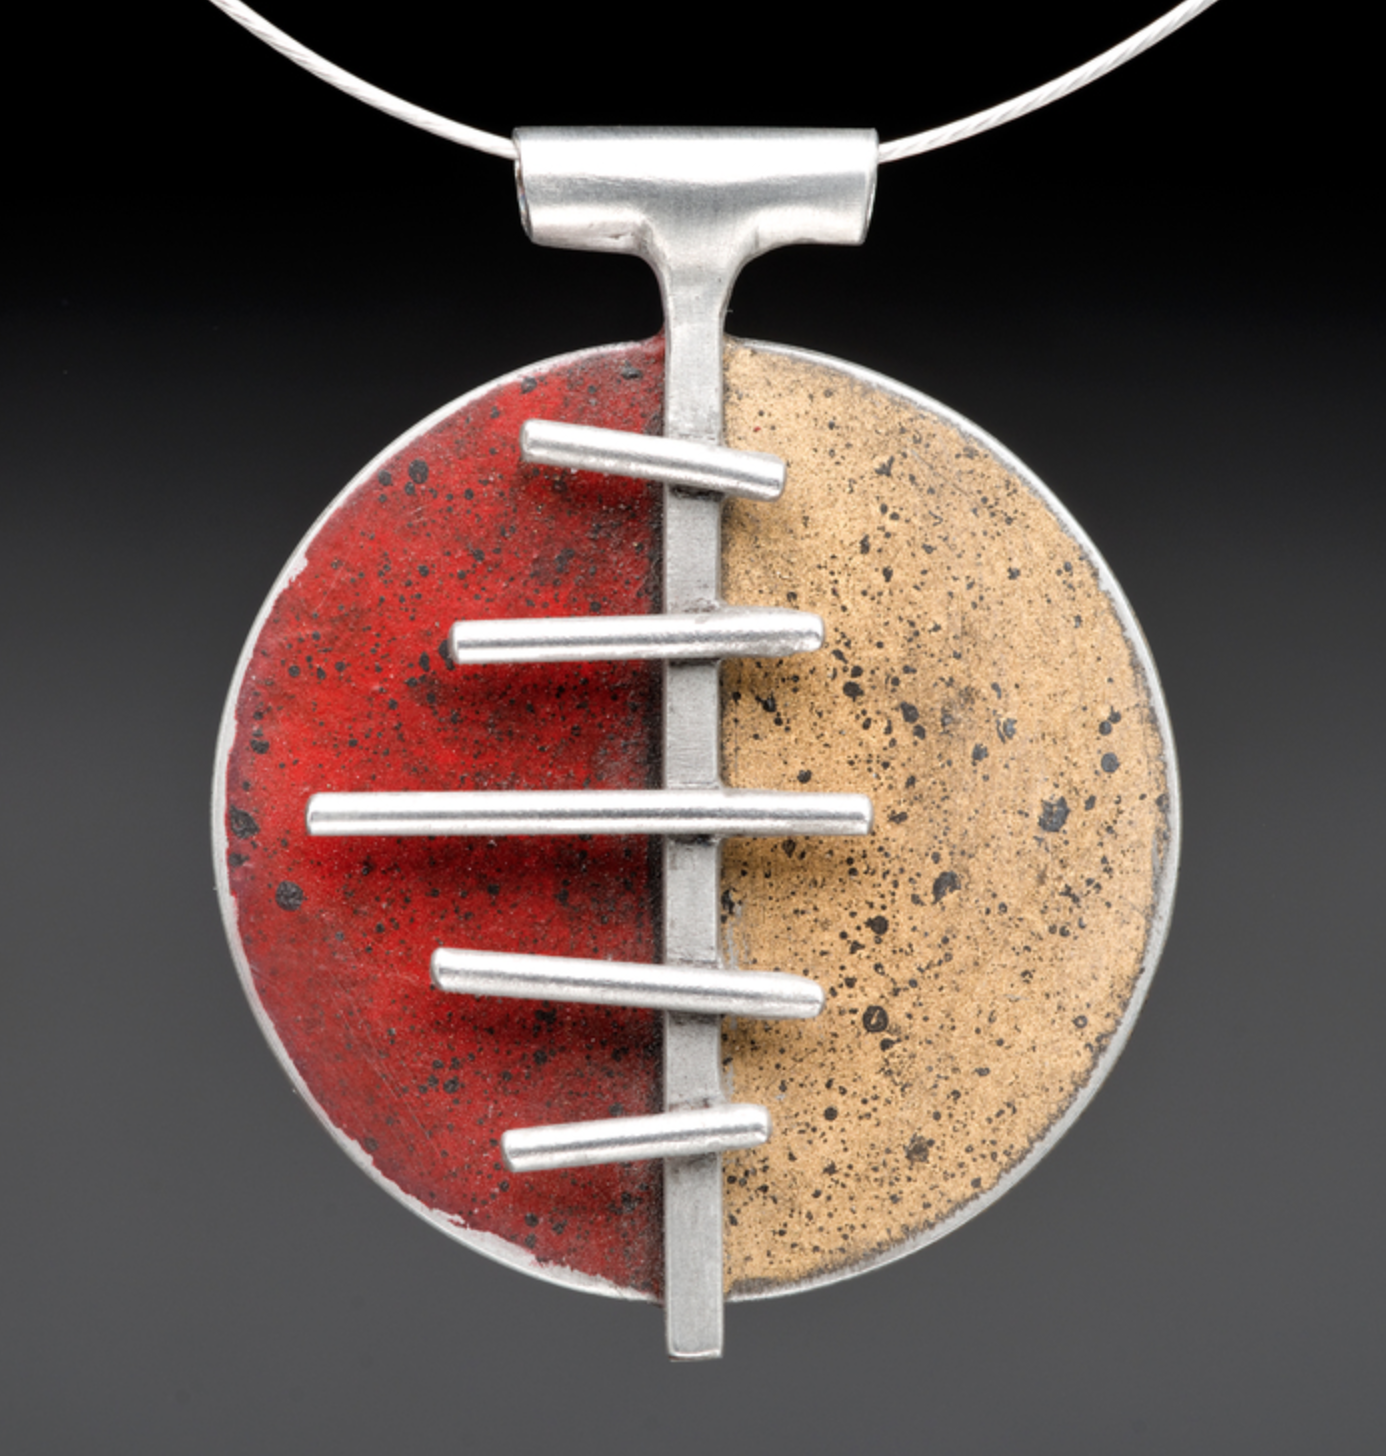 Eric Candee - http://www.goodcarmajewelry.comGood Carma Jewelry is created from Upcycled materials. We harvest timeworn metals from vintage automobiles, old farm equipment and salvage yards. We combine these elements with fabricated stainless st